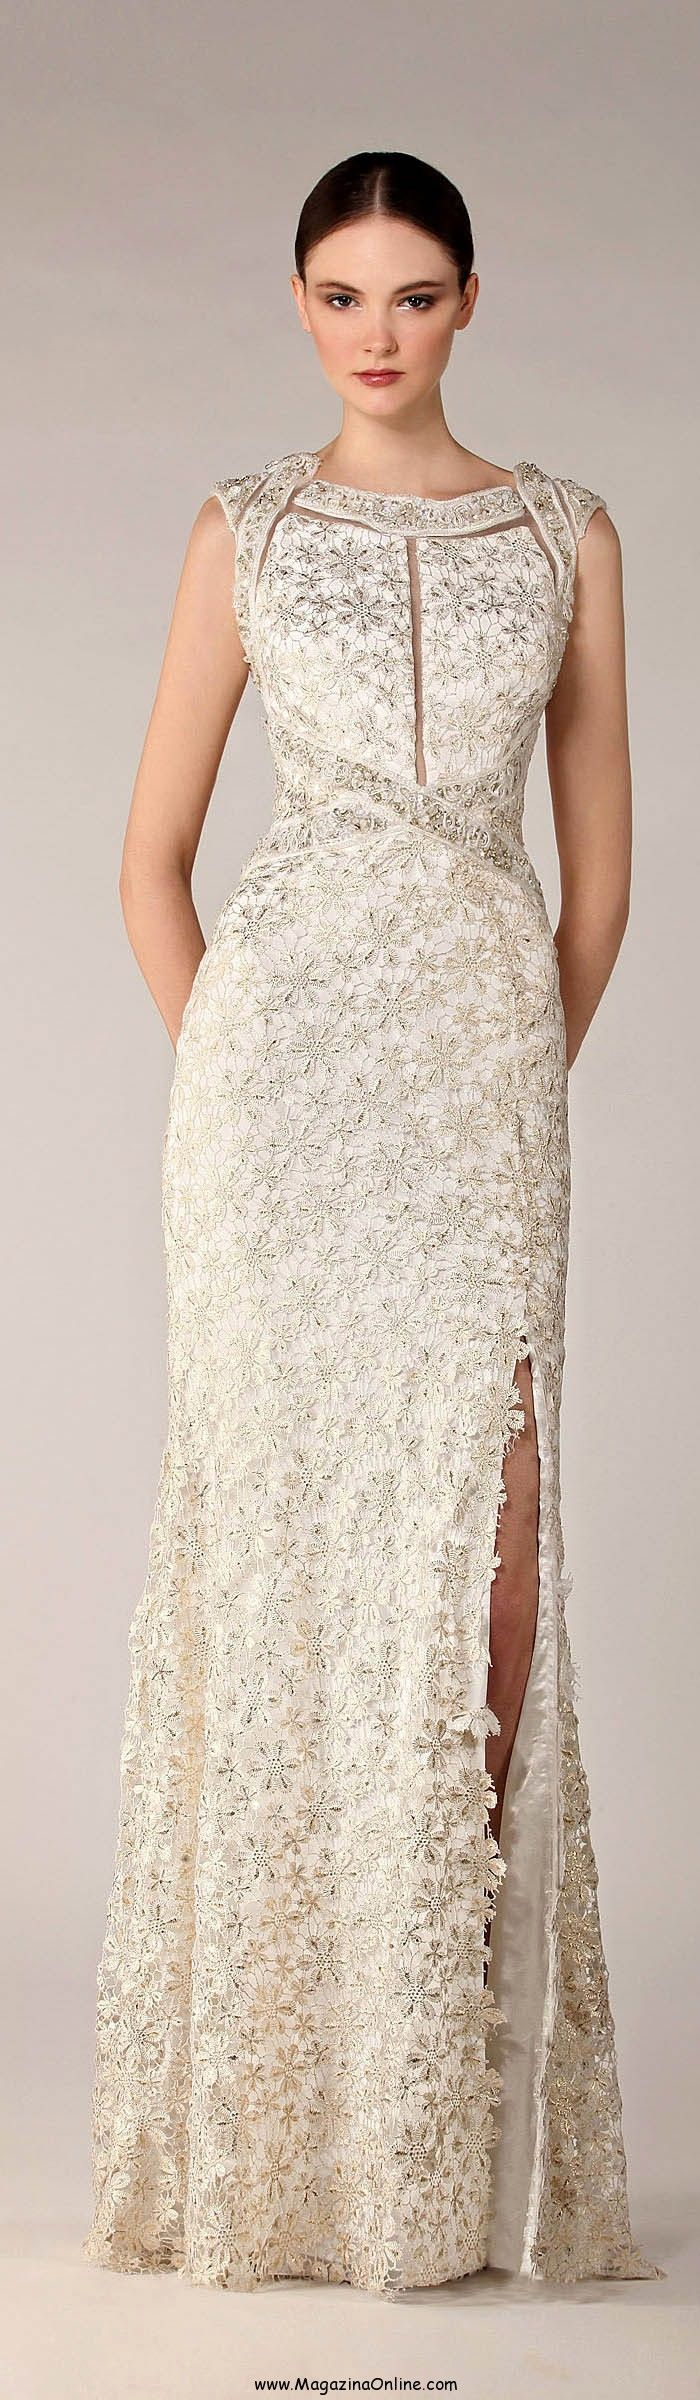 77 Best Philippine Gown Images On Pinterest Wedding Frocks Bridal